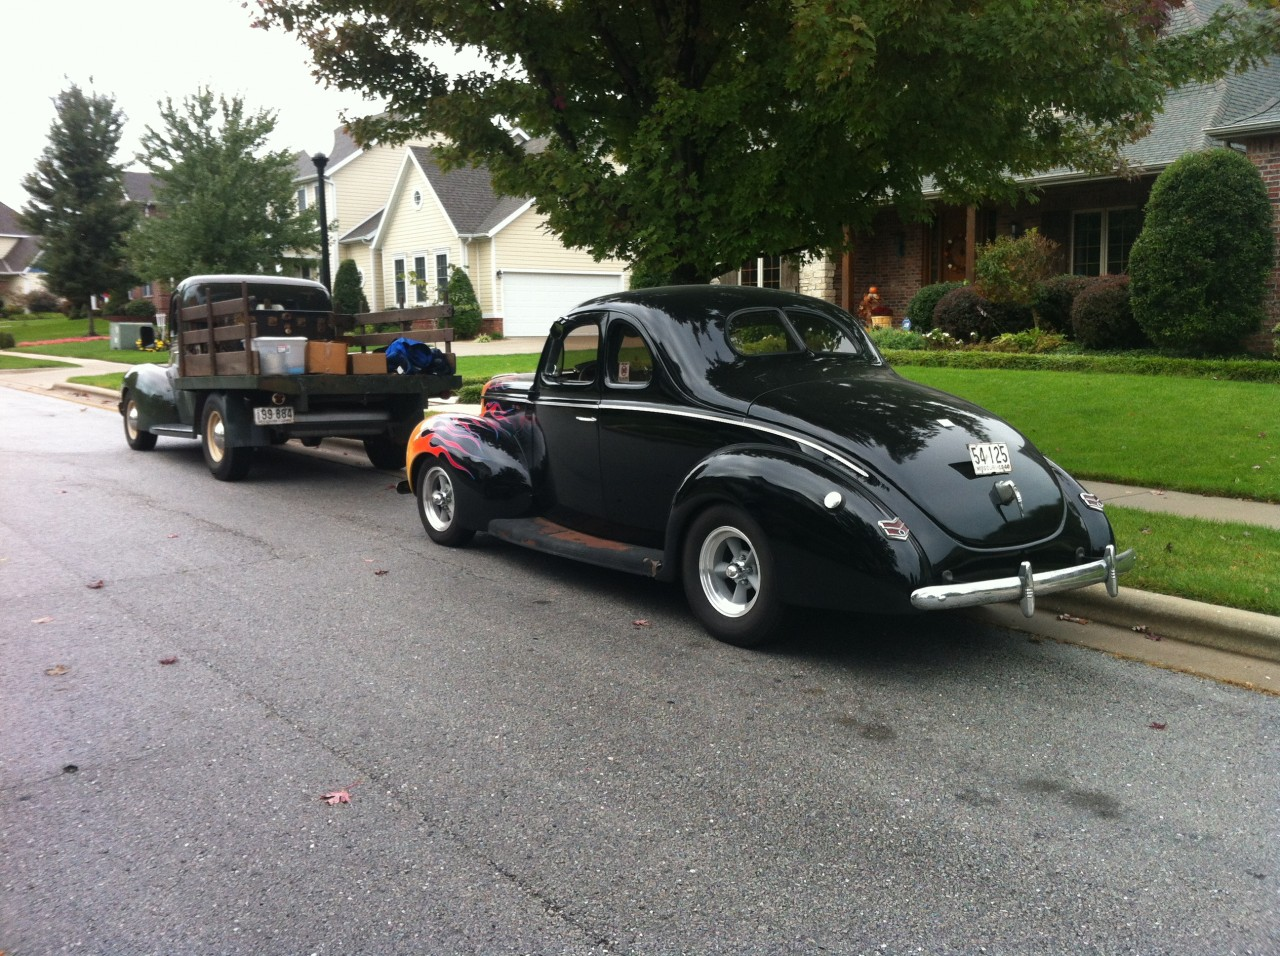 Both '40s out of the garage at the same time!